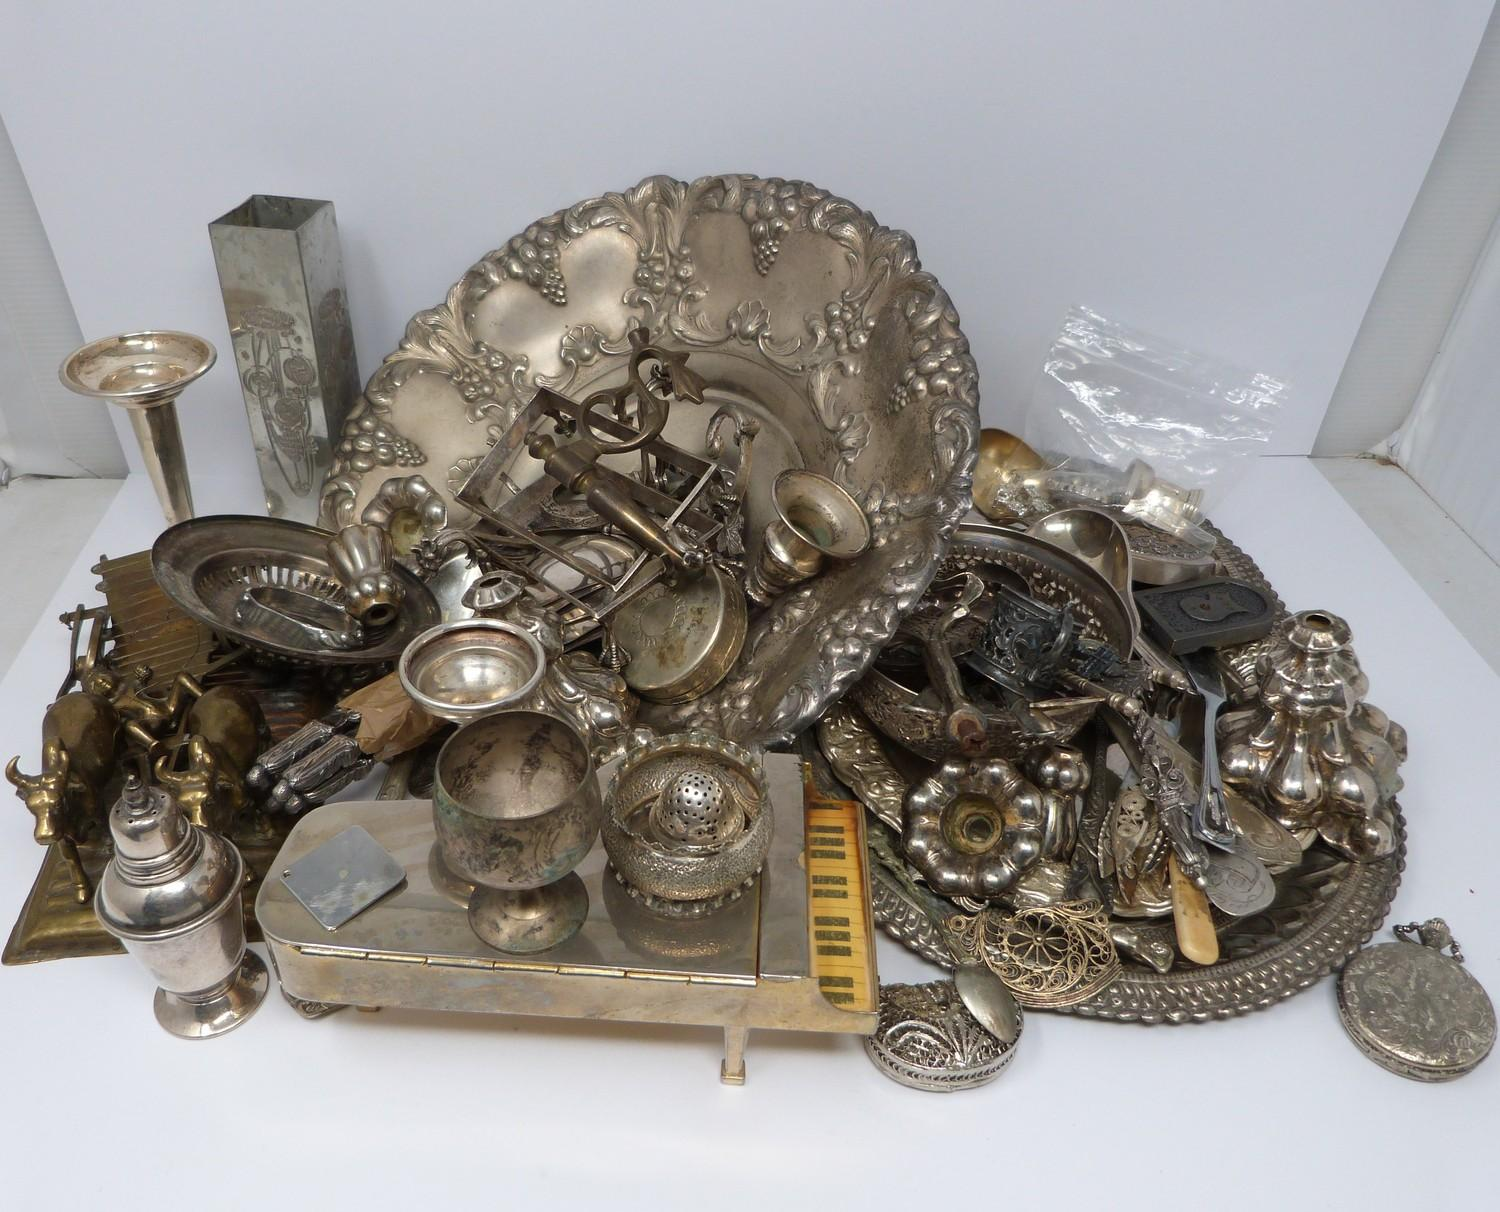 A collection of silver plate and other metalware including, trays, apostle spoons, bowls and cutlery